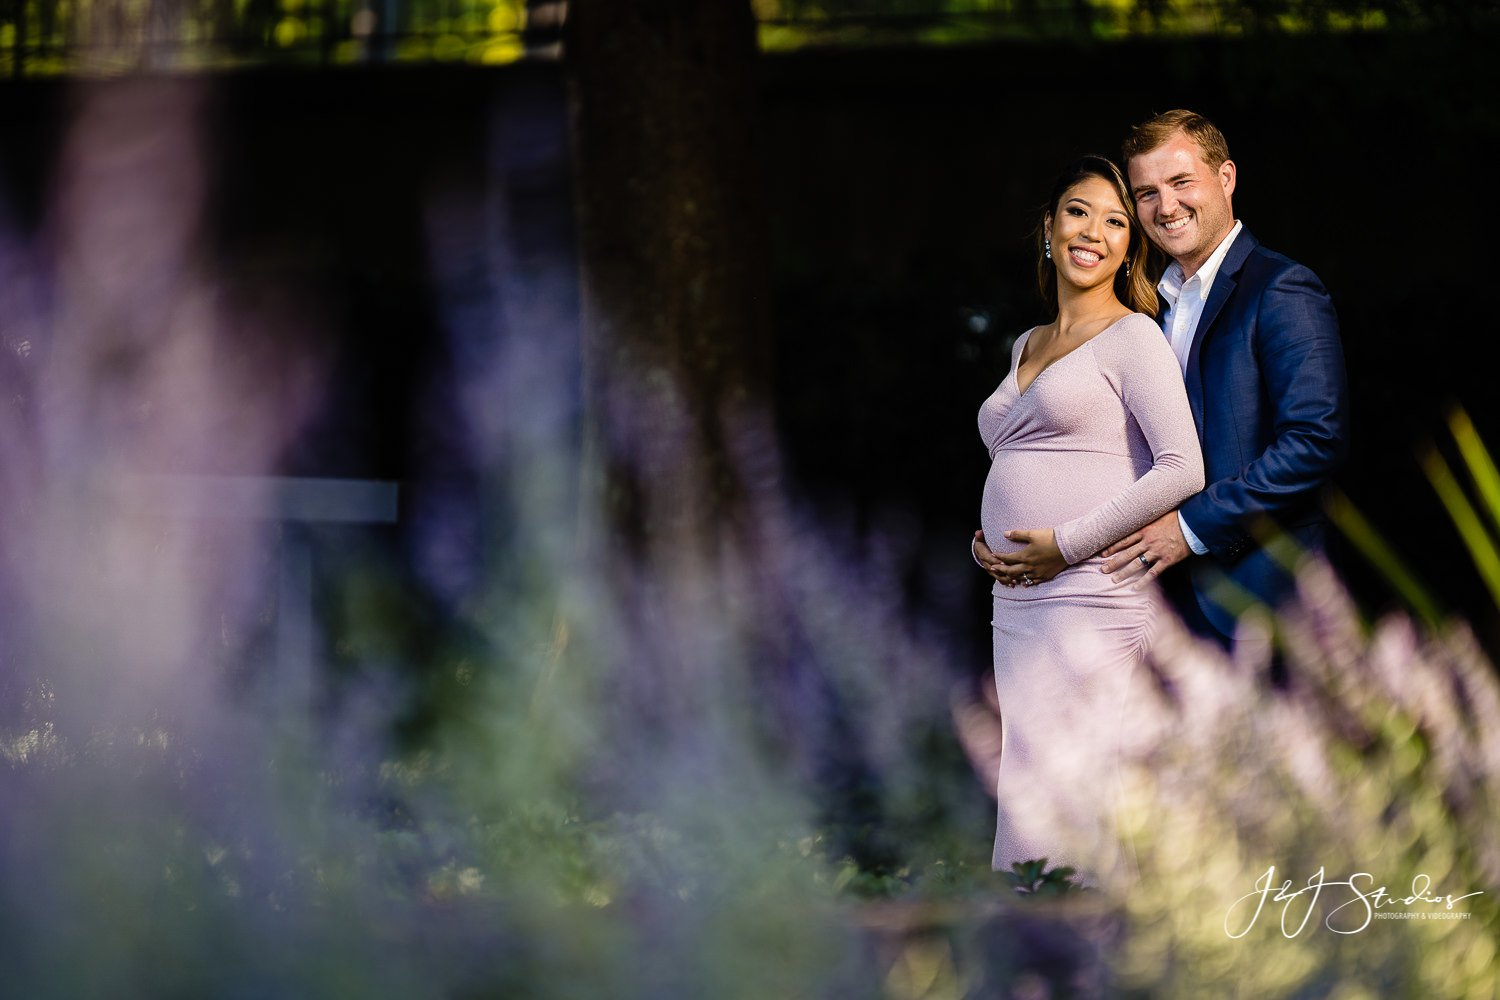 longwood gardens maternity session